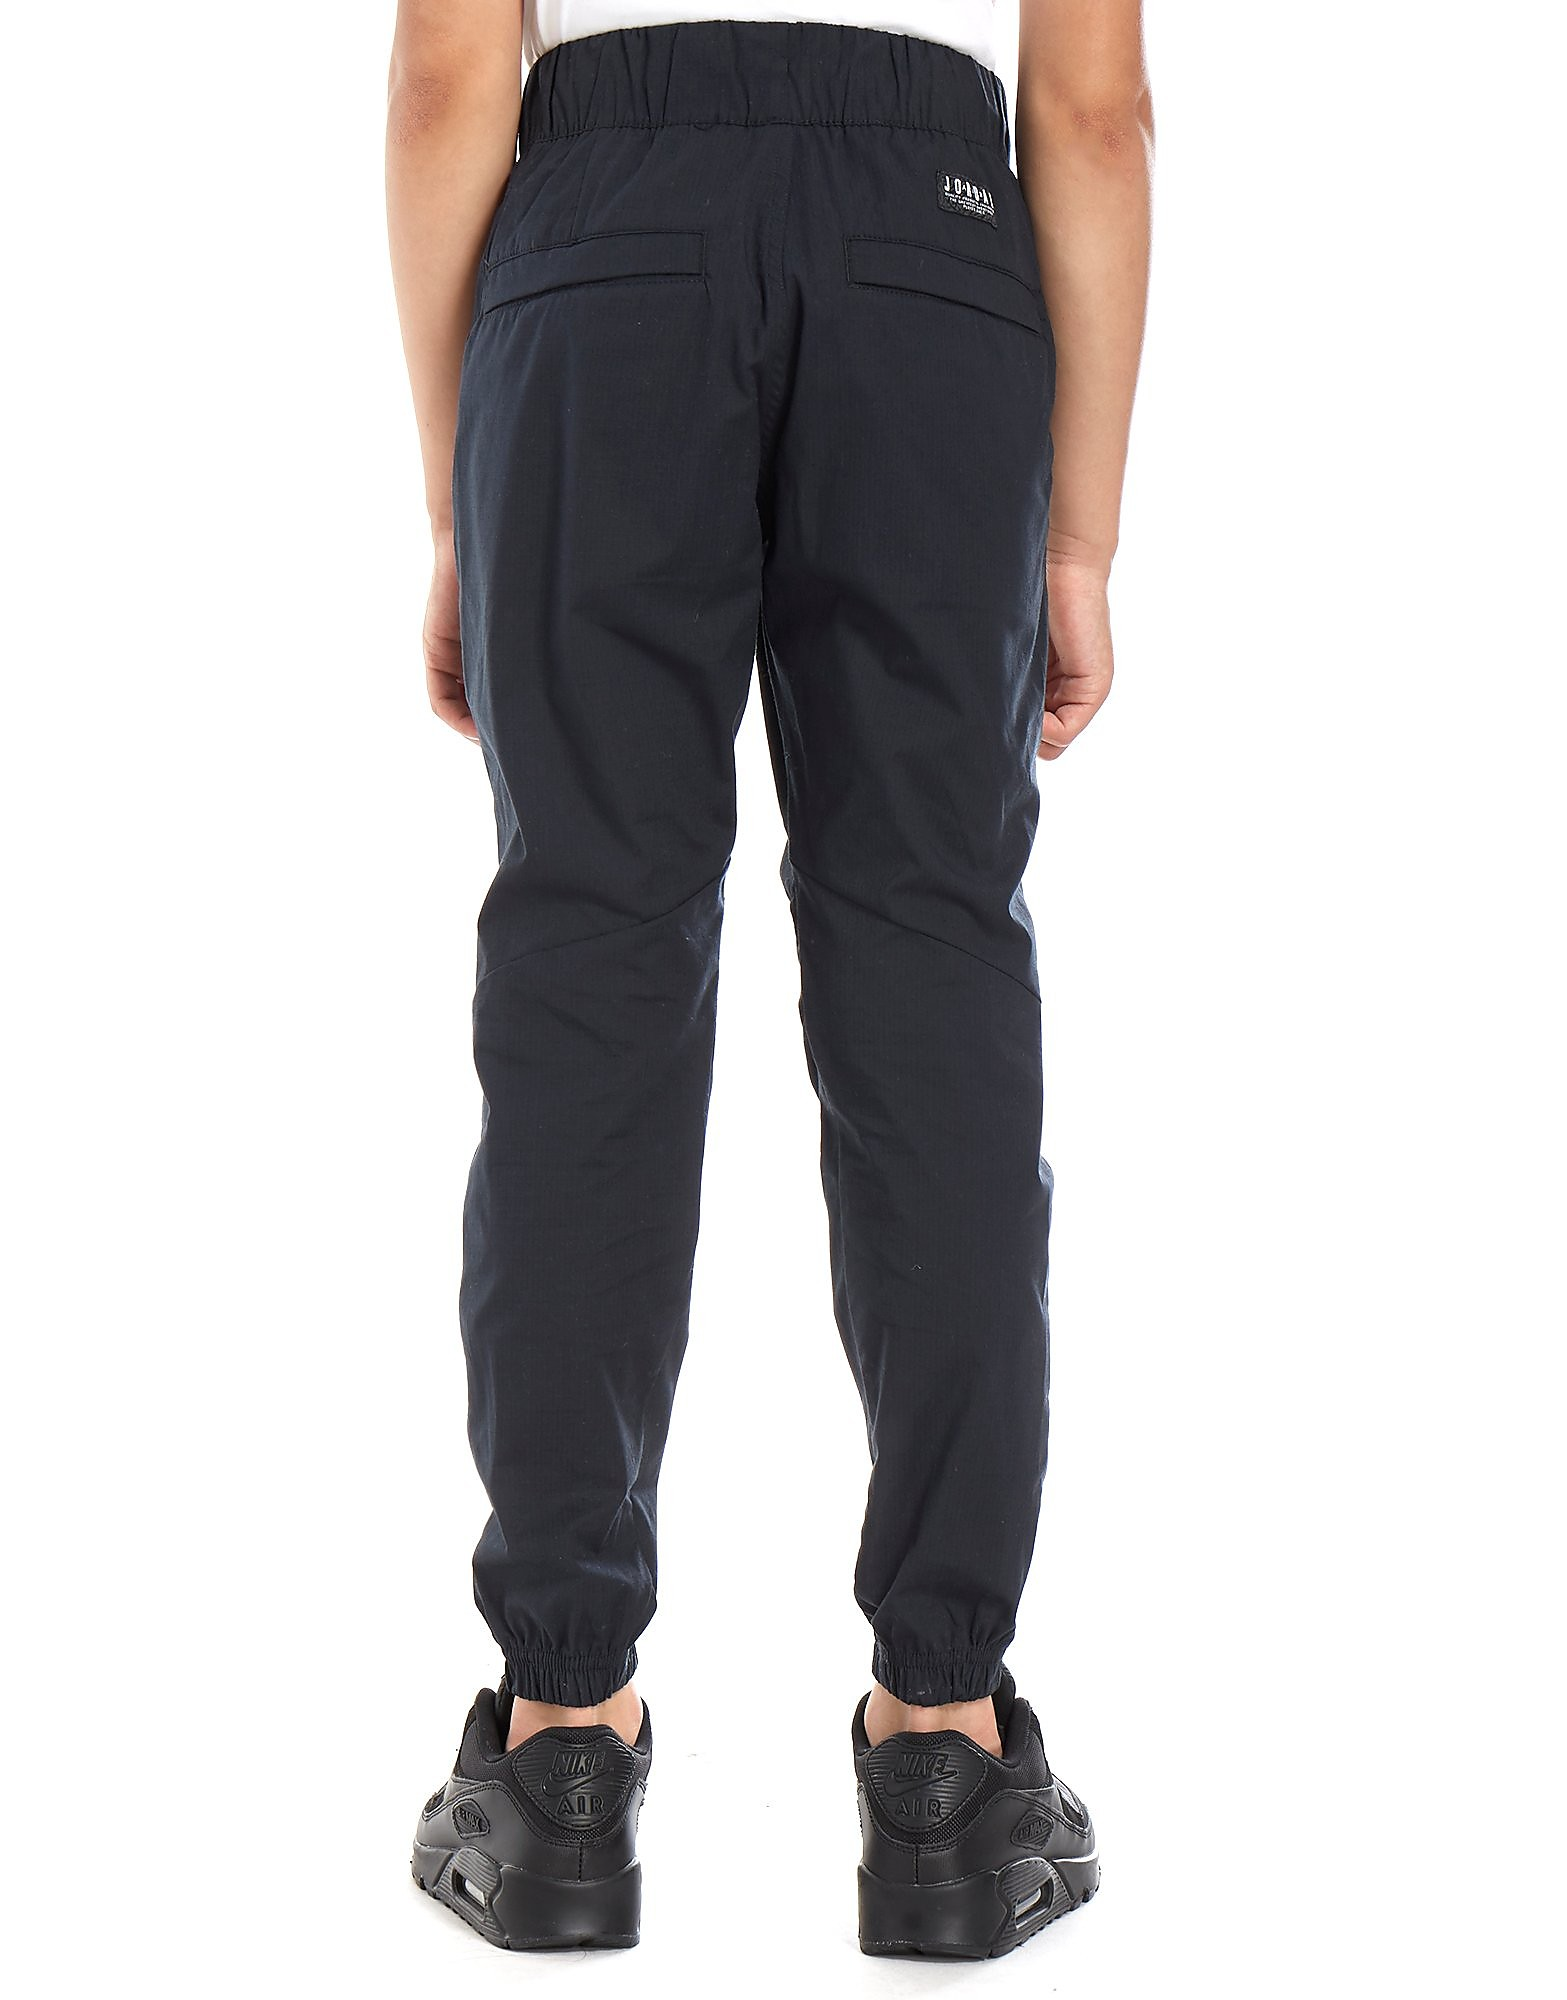 Jordan Pantalon de survêtement City Woven Track Junior